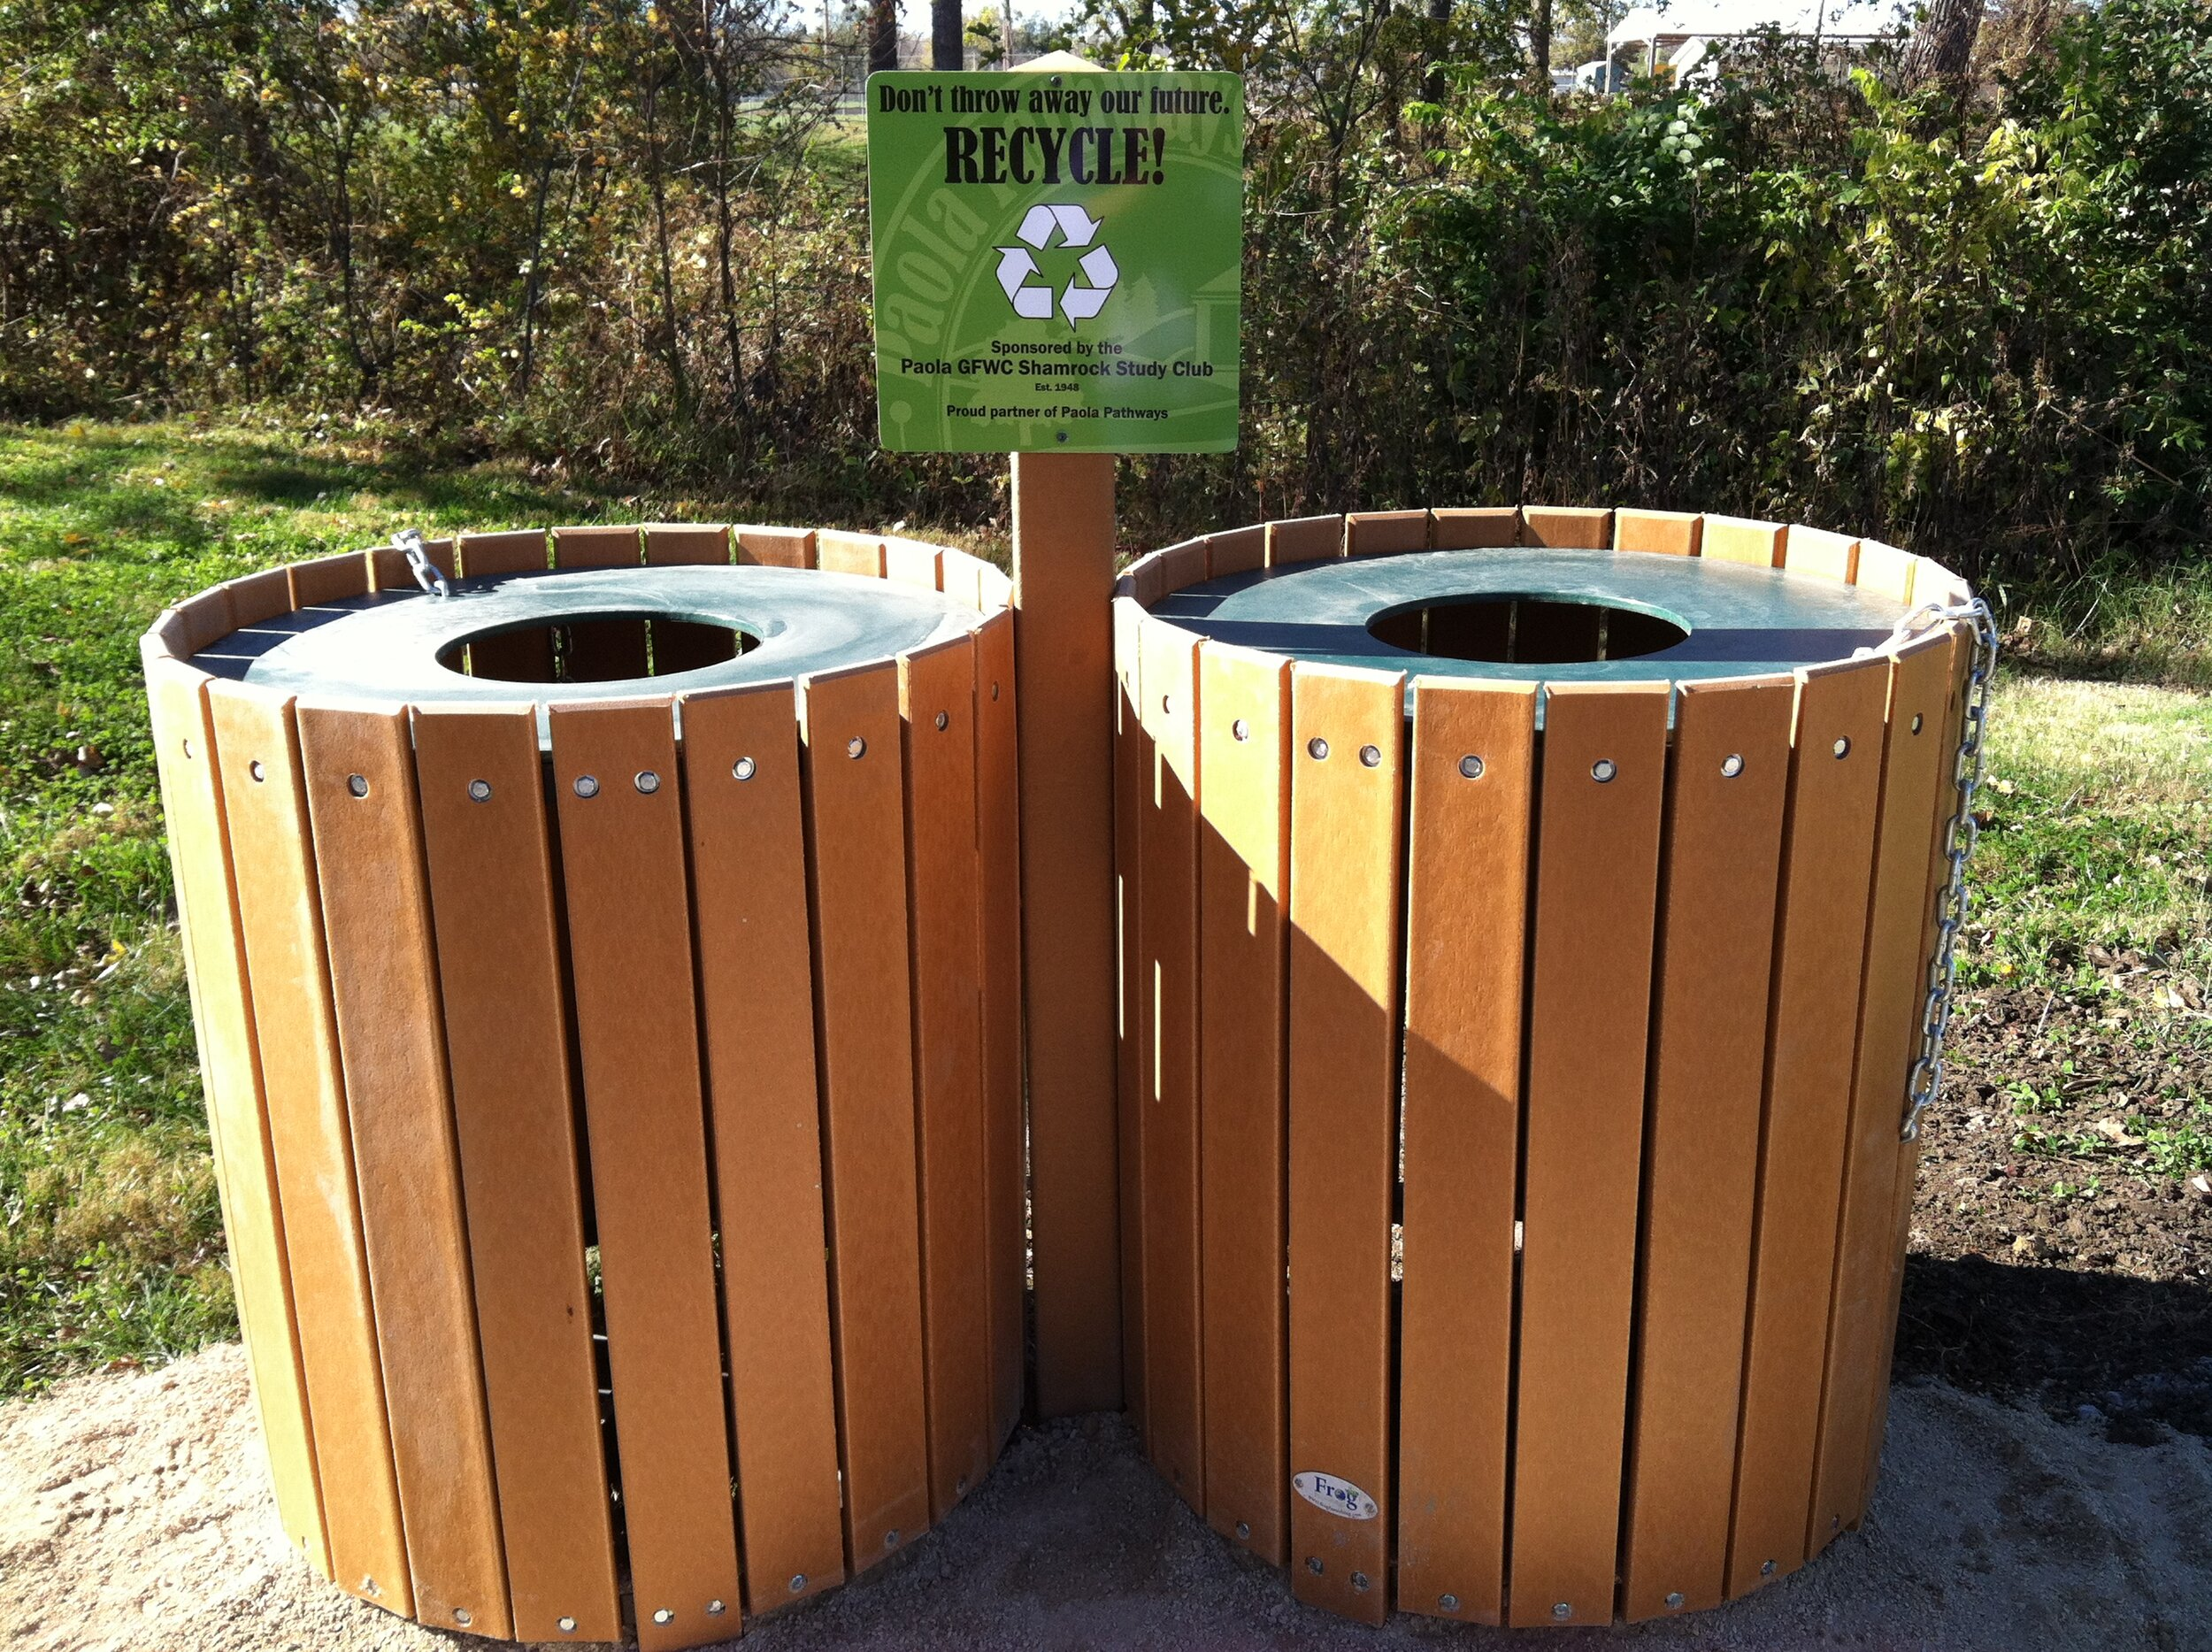 Sponsored recycle/trash combo units installed at each trailhead.